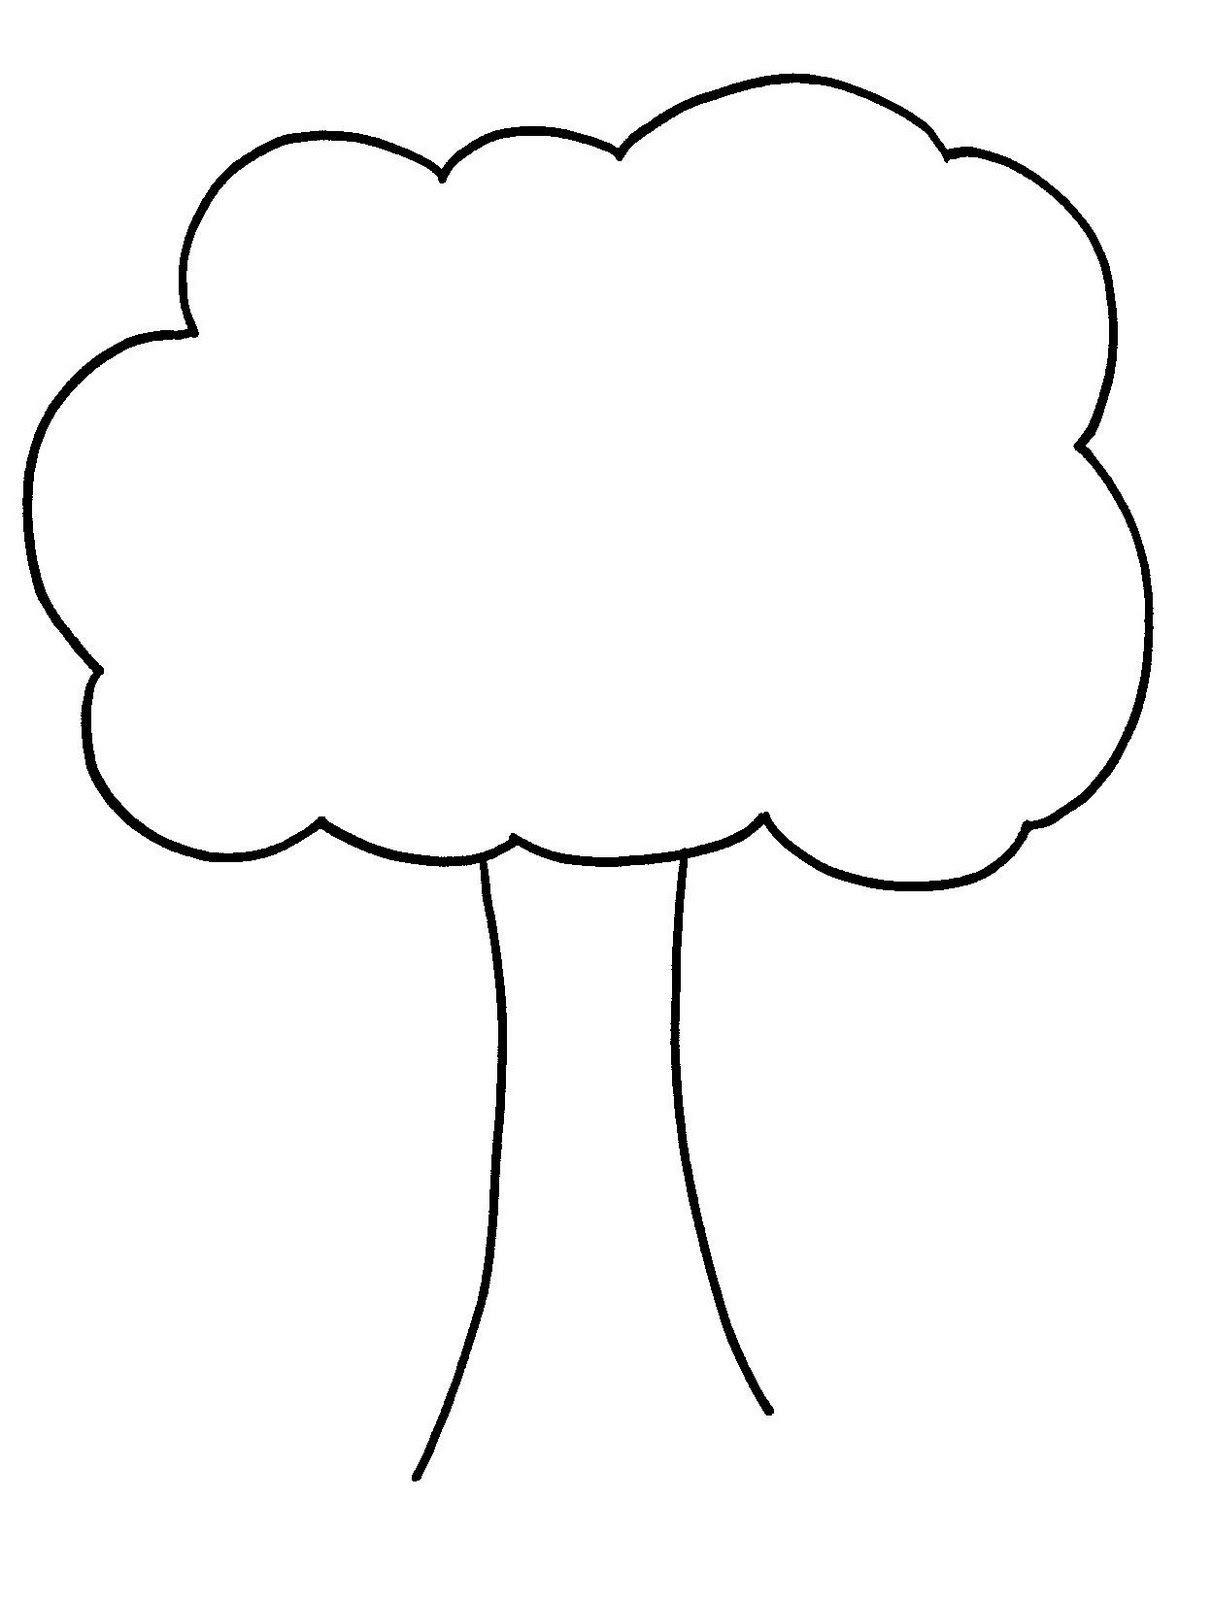 Bare Tree Template